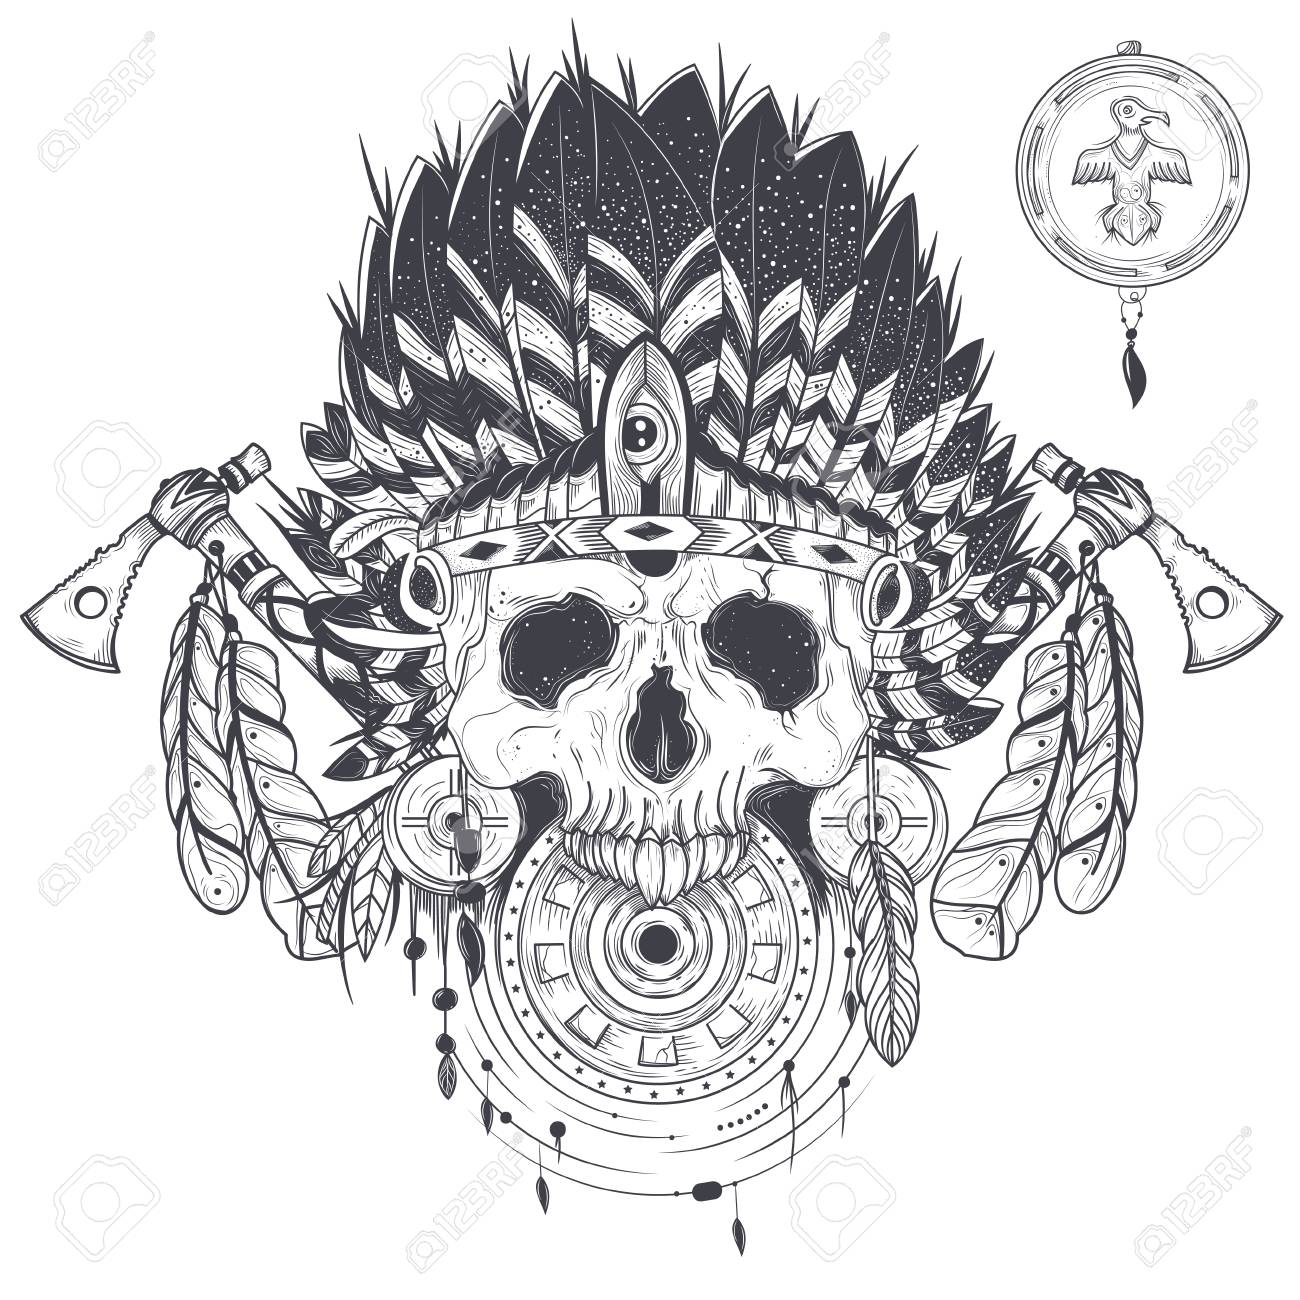 Illustration Of A Template For Tattoo With Human Skull In